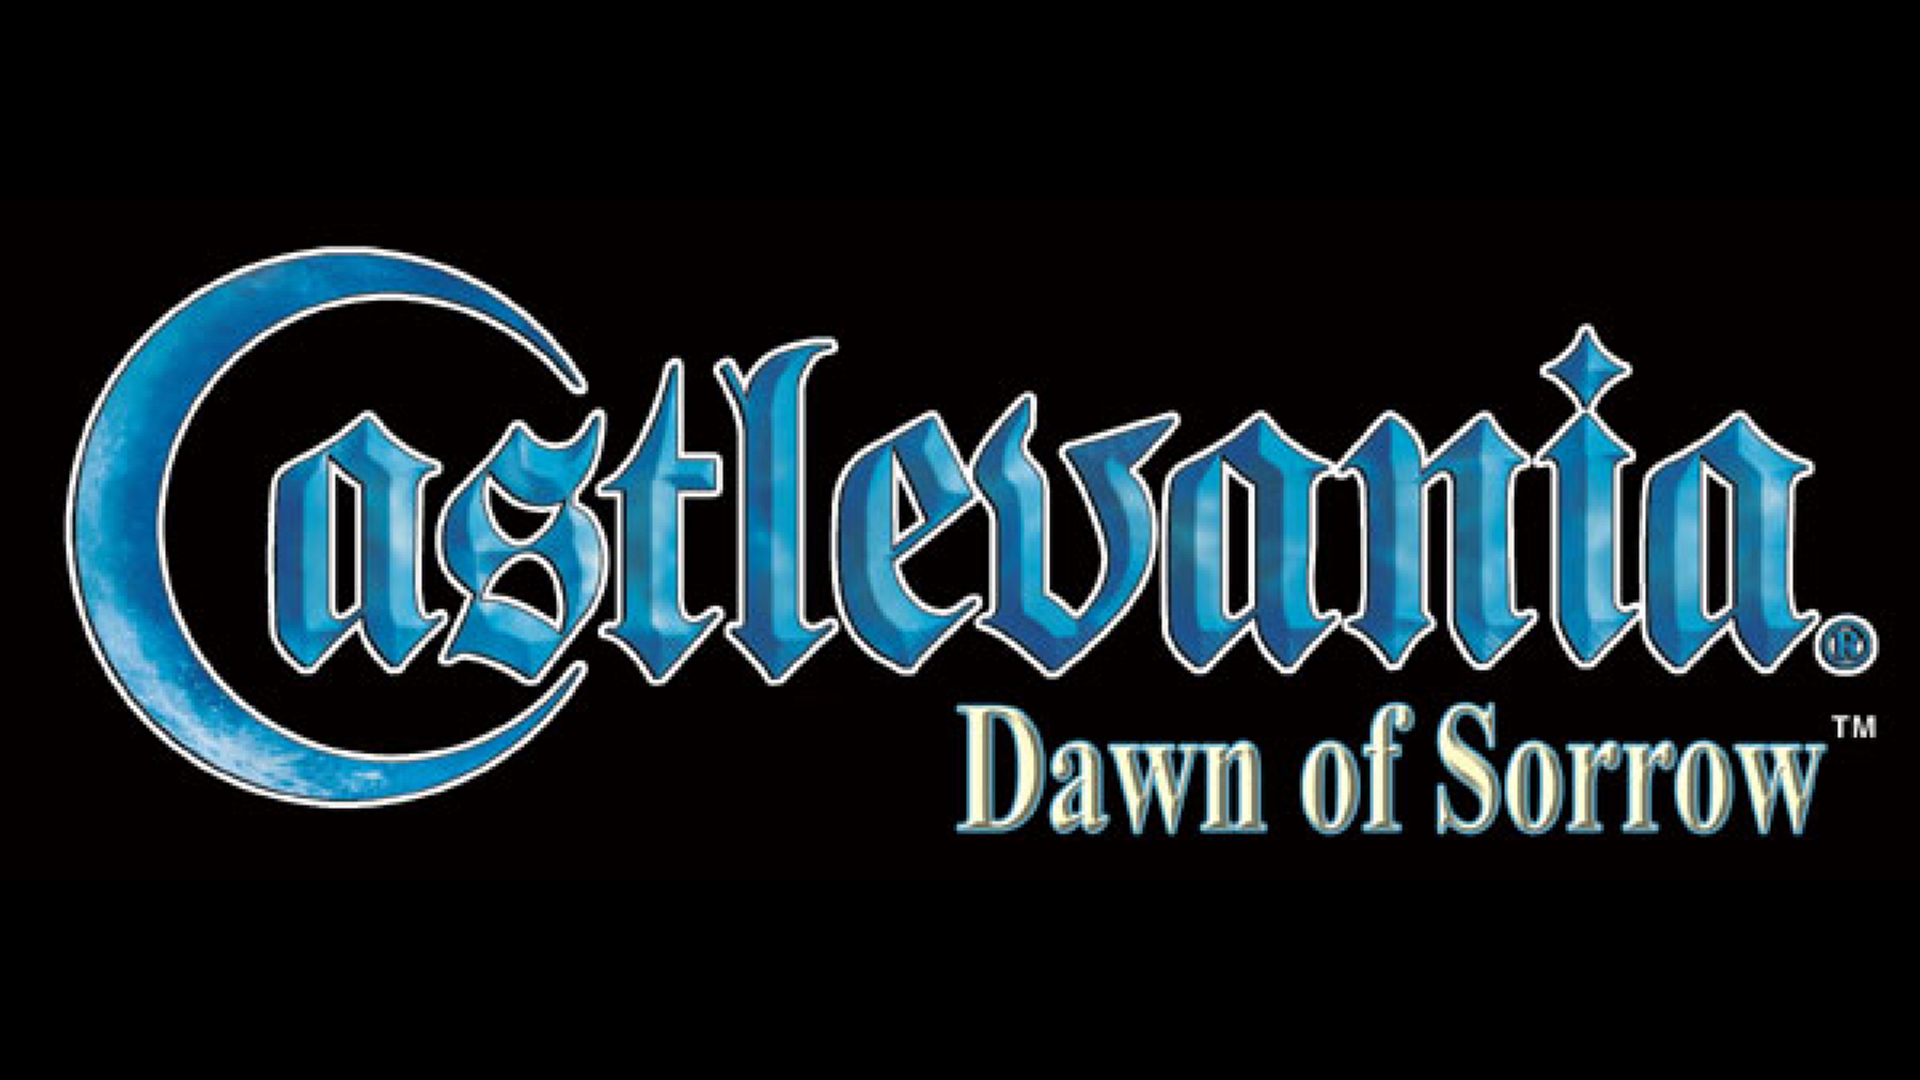 Castlevania: Dawn Of Sorrow Logo